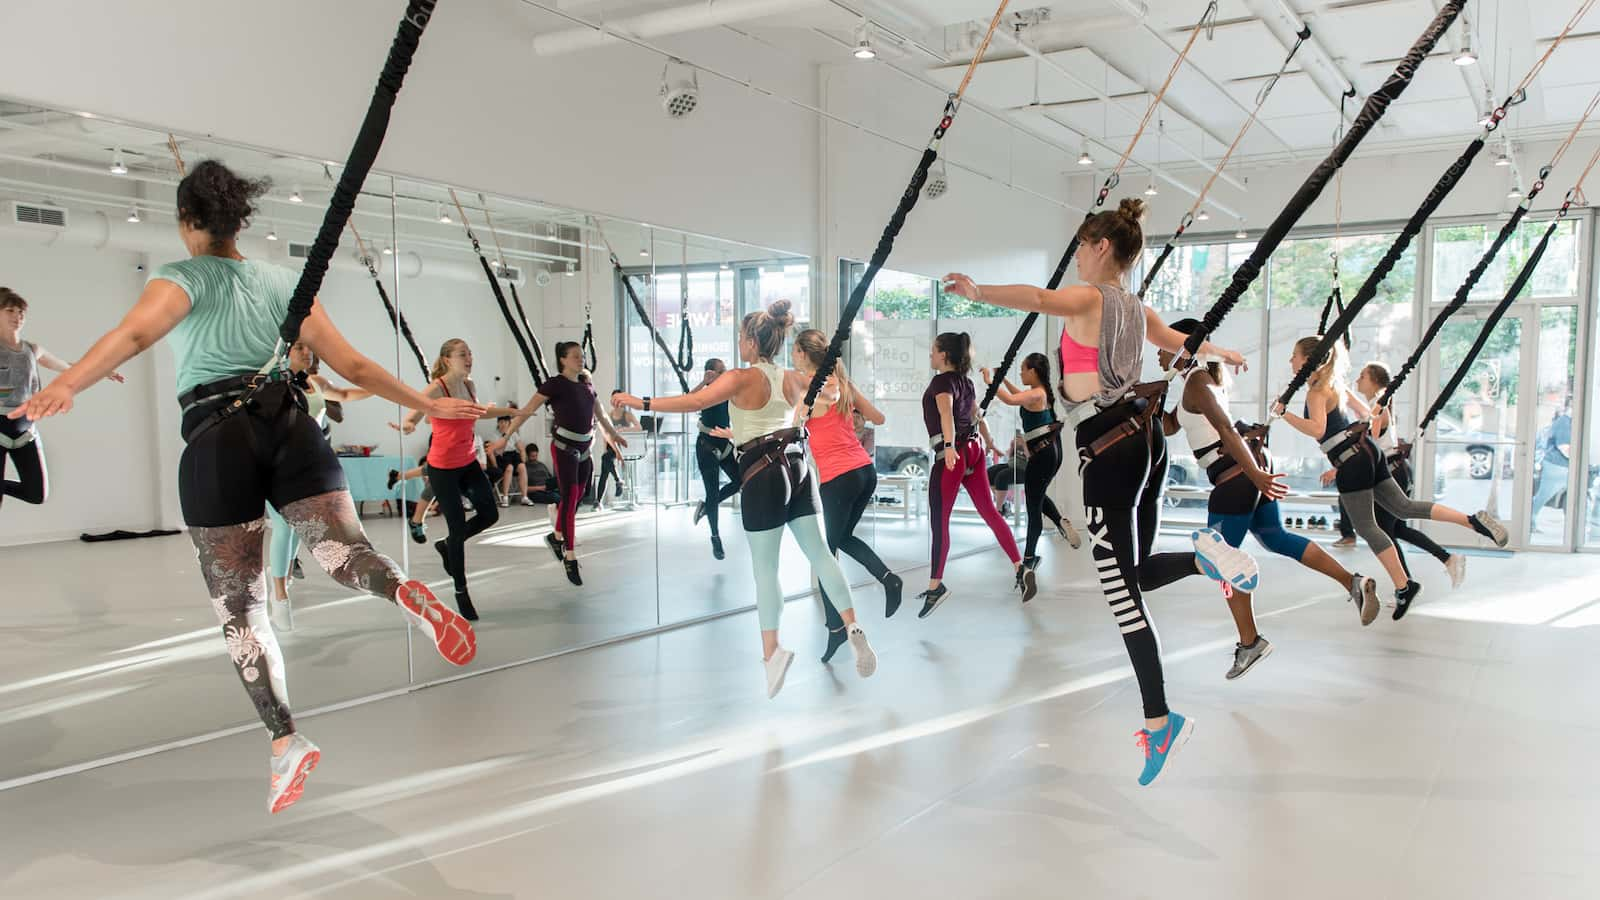 Why The Bungee Yoga Class Is The Coolest Exercise Class On Offer